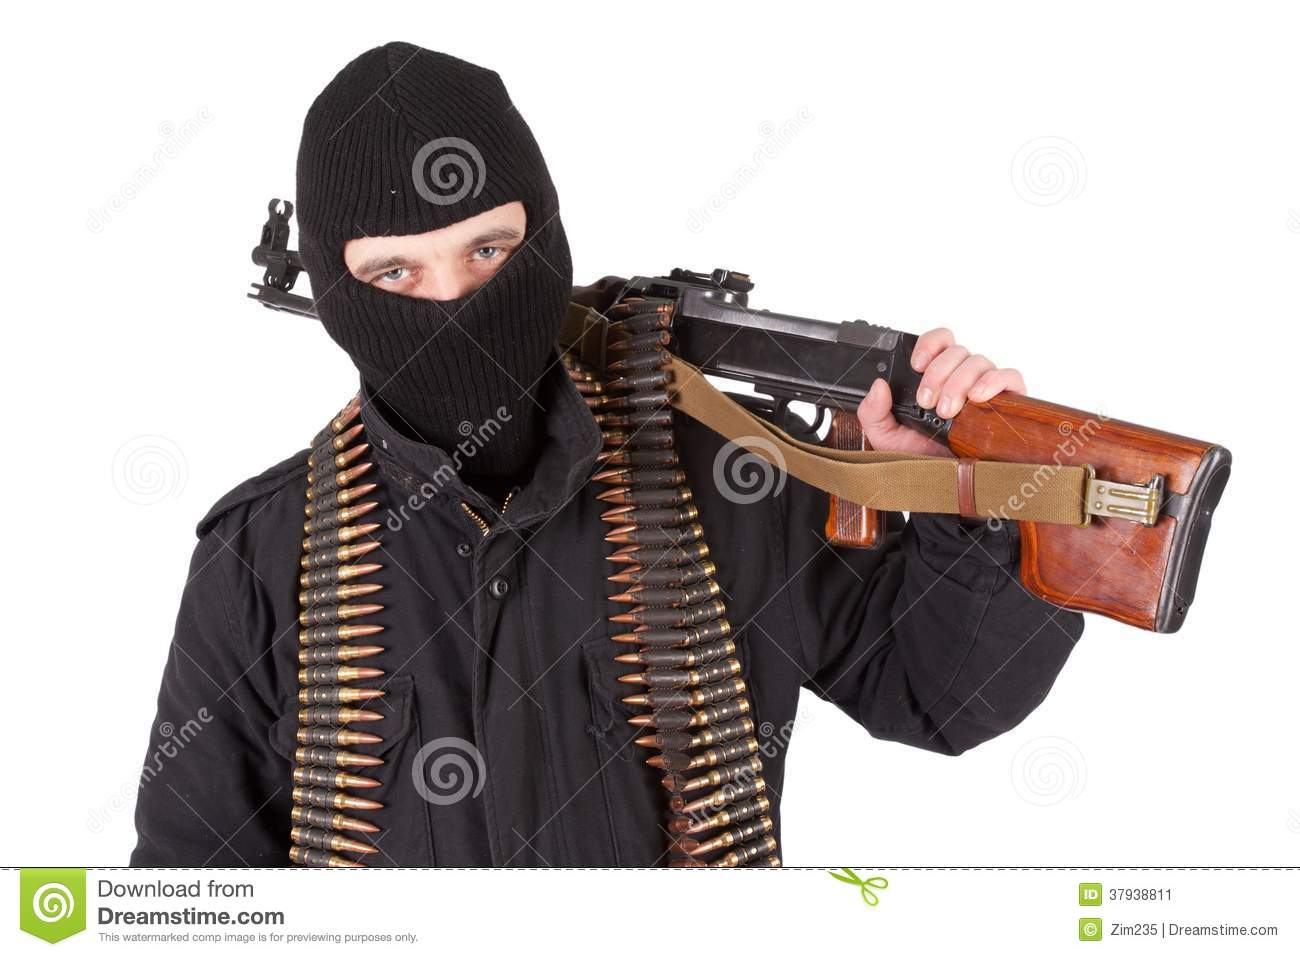 Mercenary - Soldier Of Fortune Stock Image - Image: 37938811